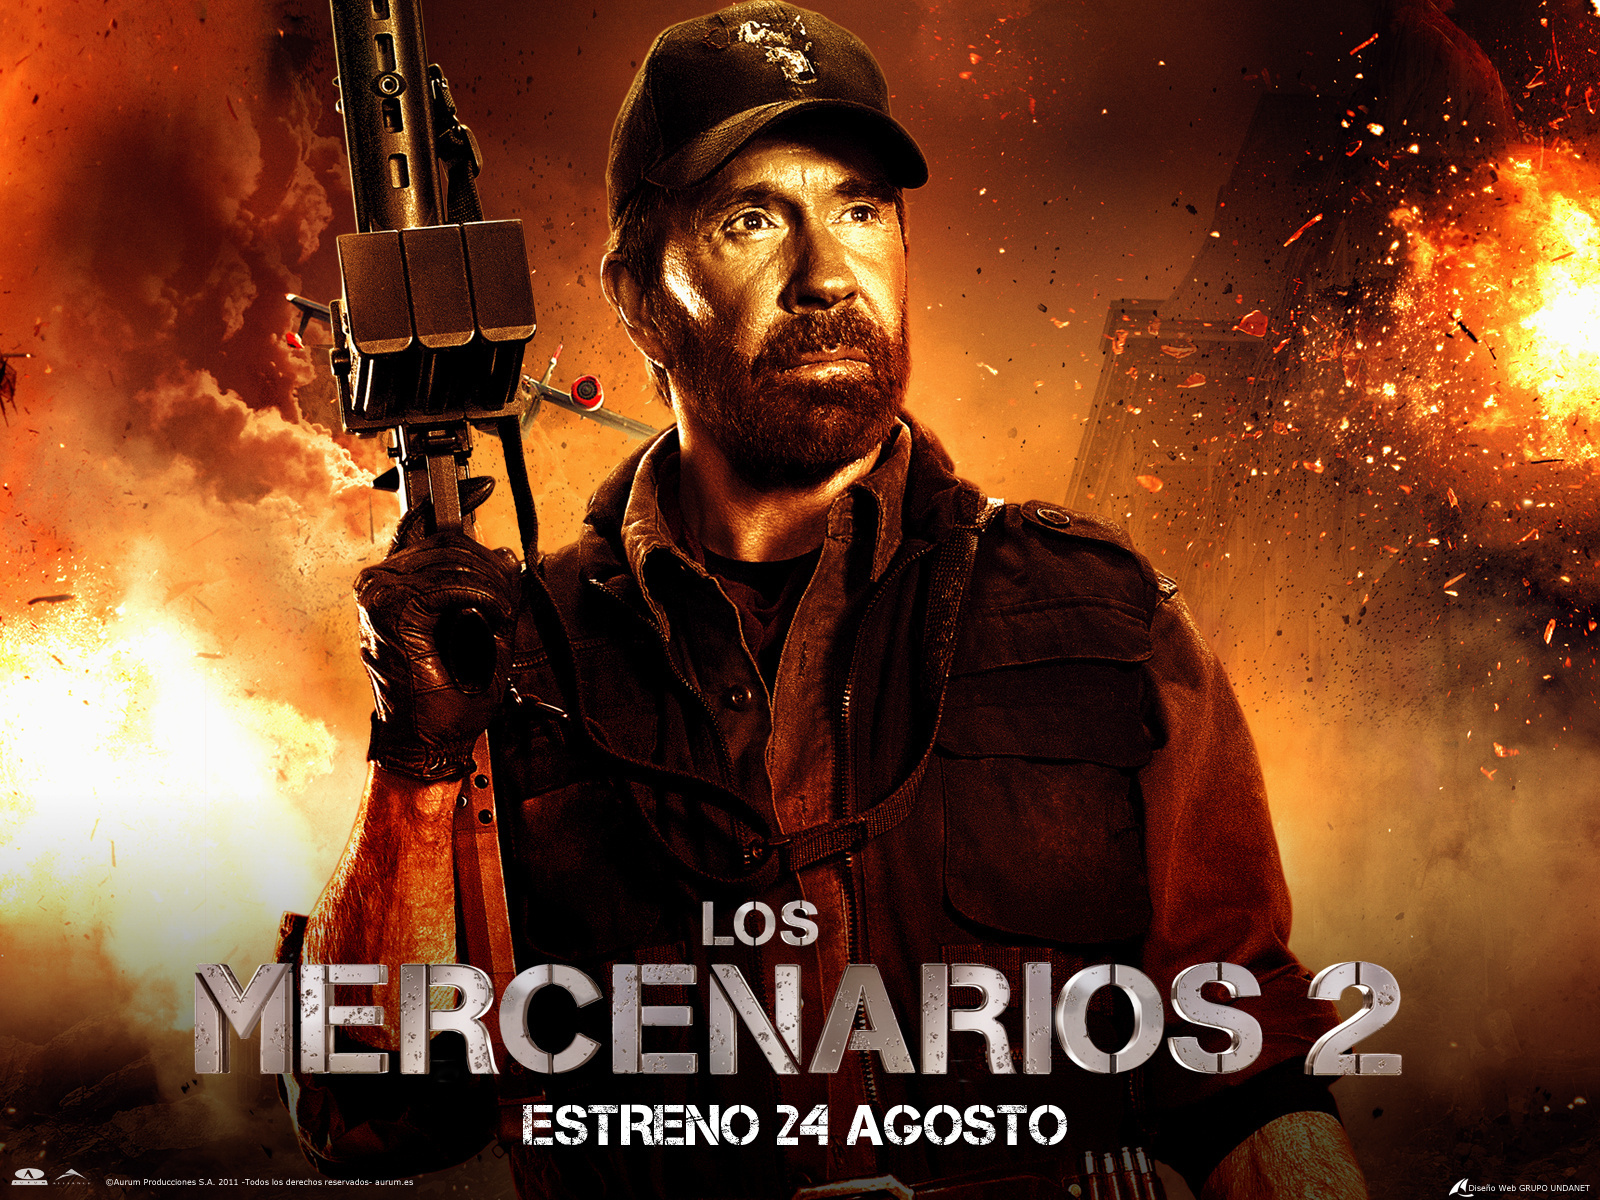 Images The Expendables 2010 Chuck Norris Movies film